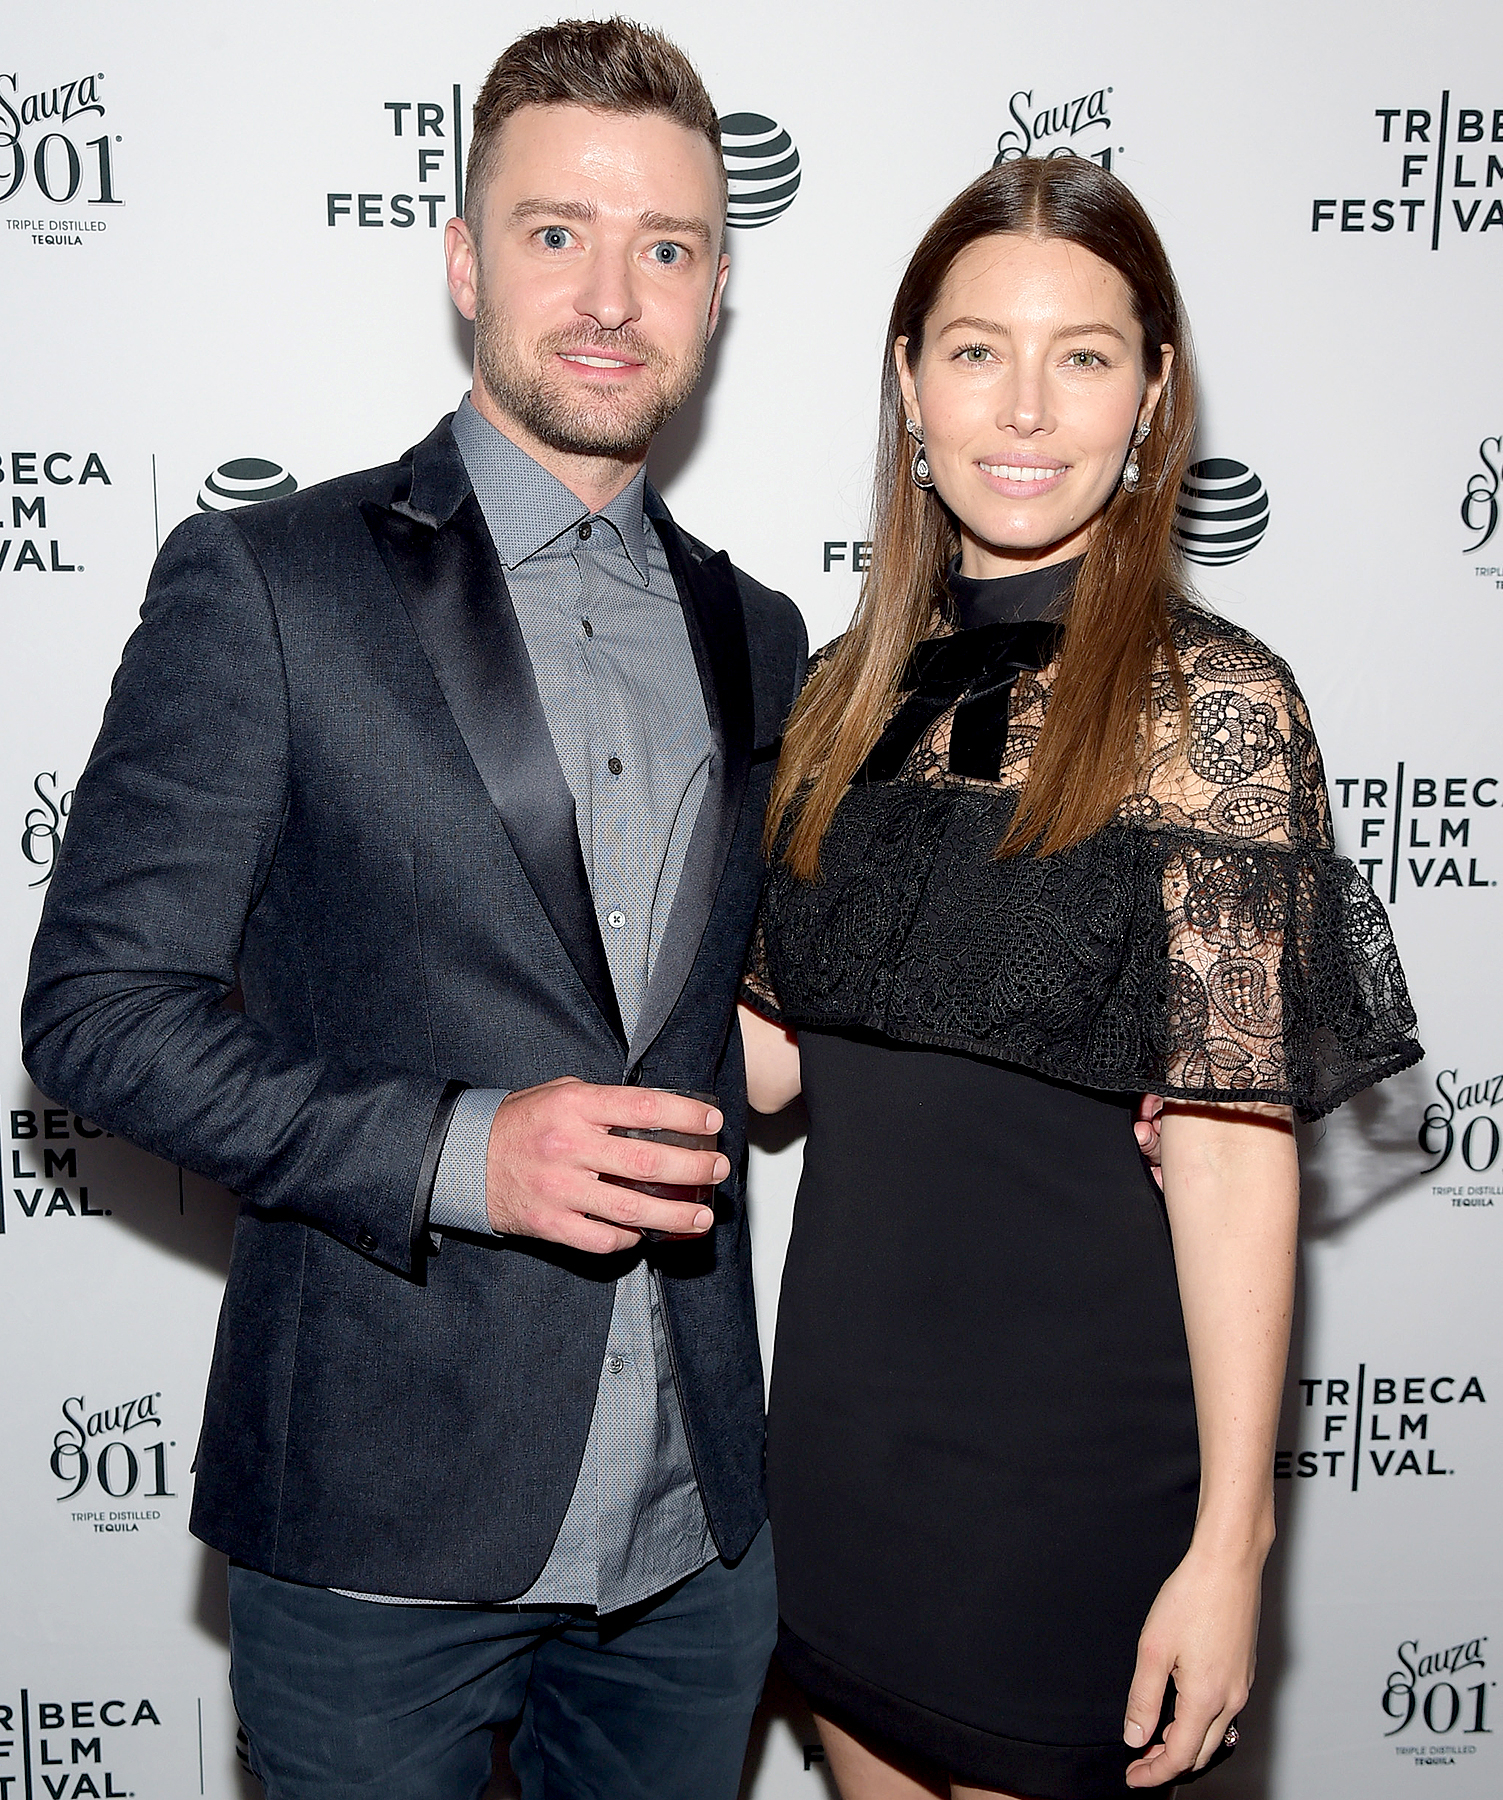 Justin Timberlake and Jessica Biel arrive at the Tribeca Film Festival